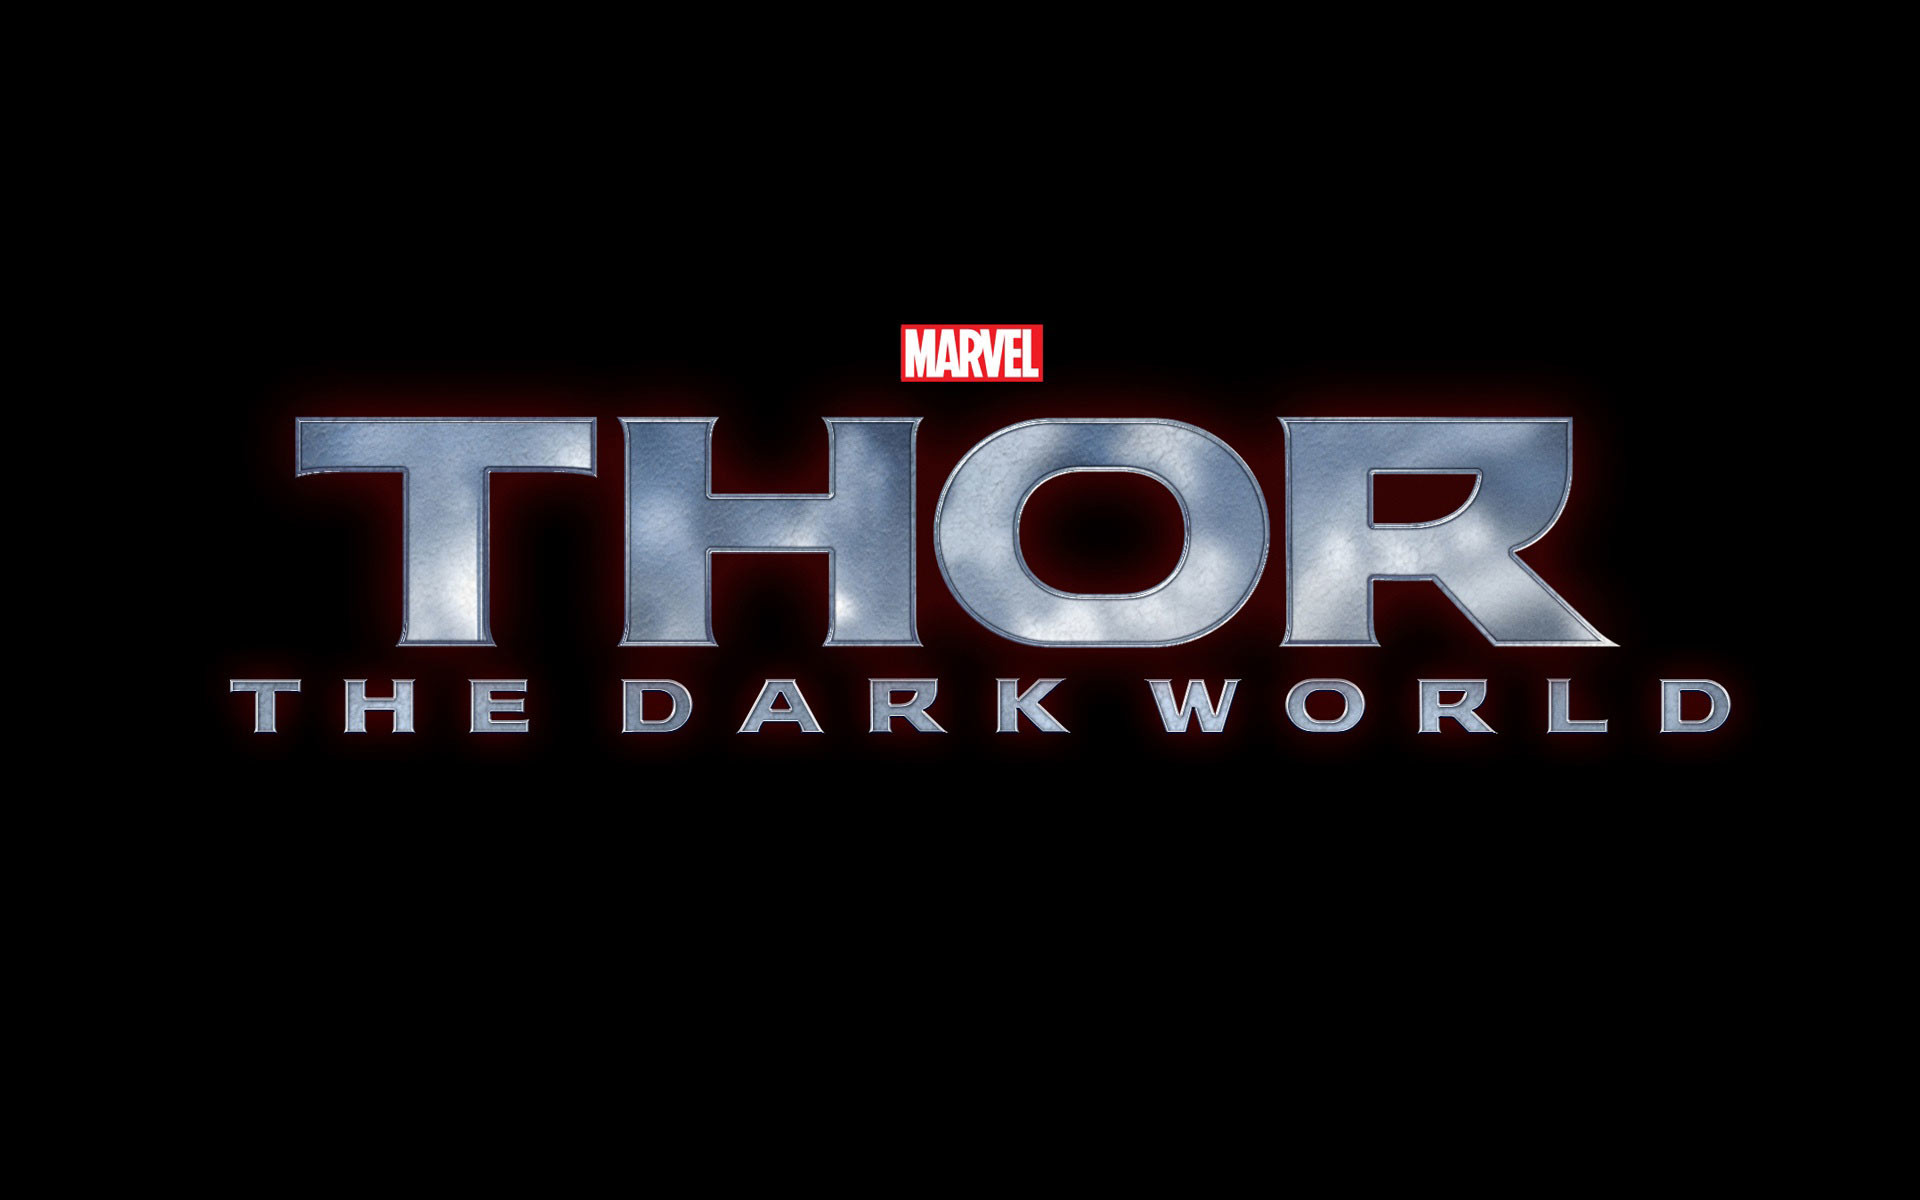 thor2_wallpapers_desktop_backgrounds_thor2_hd_free_wallpapers_thor2_desktop_wallpapers_thor2_wallpapers_backgrounds4.  Thor 2 Wallpapers and Desktop …